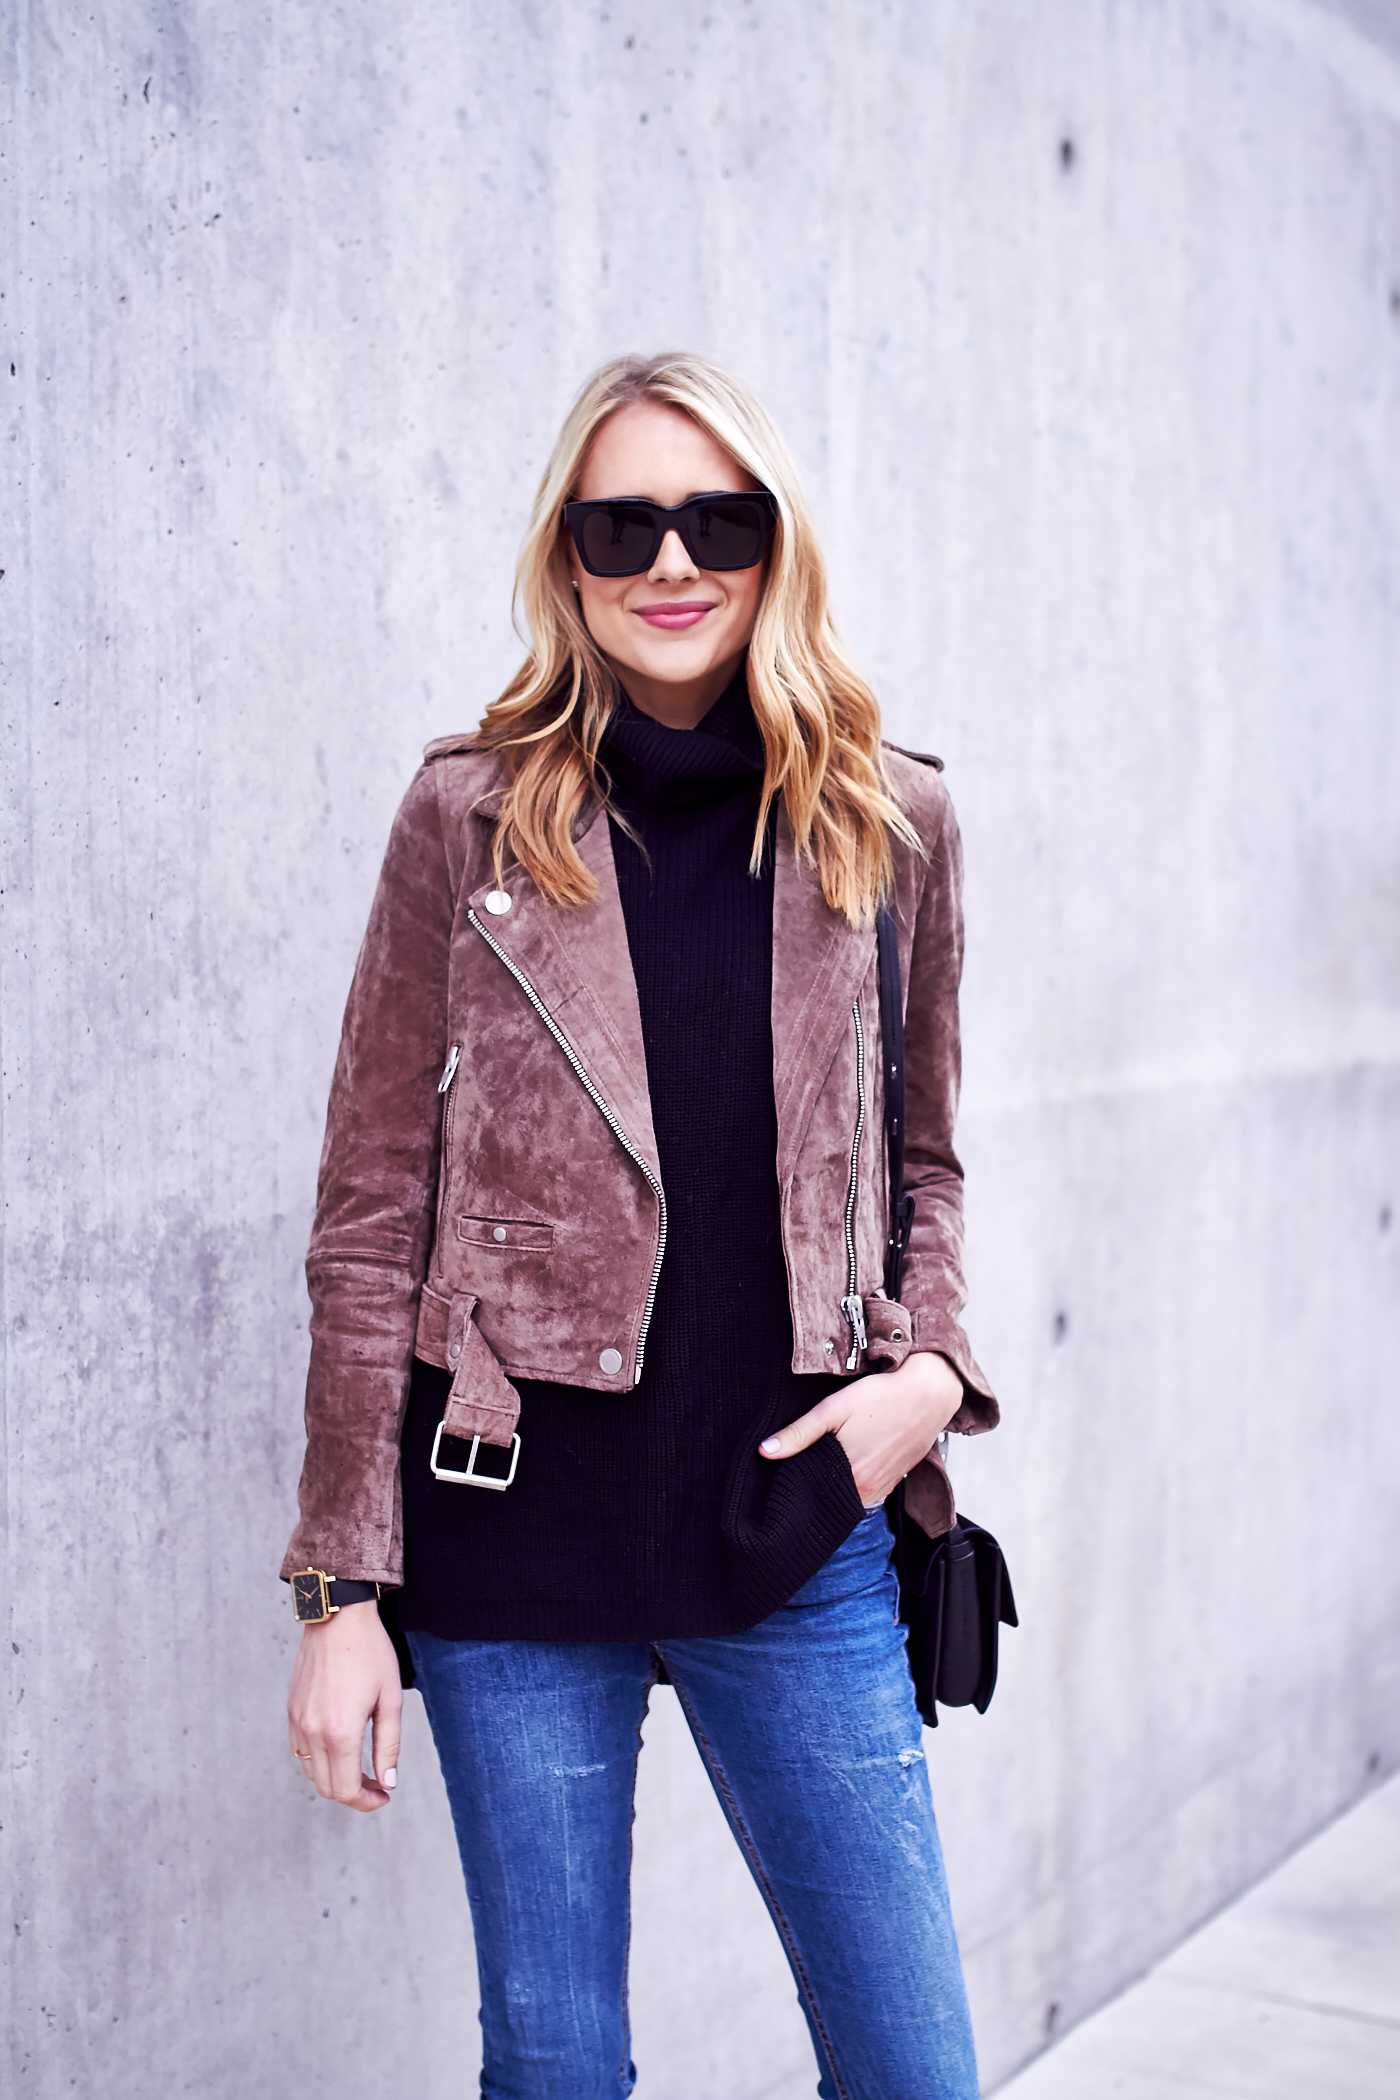 HOW TO WEAR A SUEDE MOTO JACKET